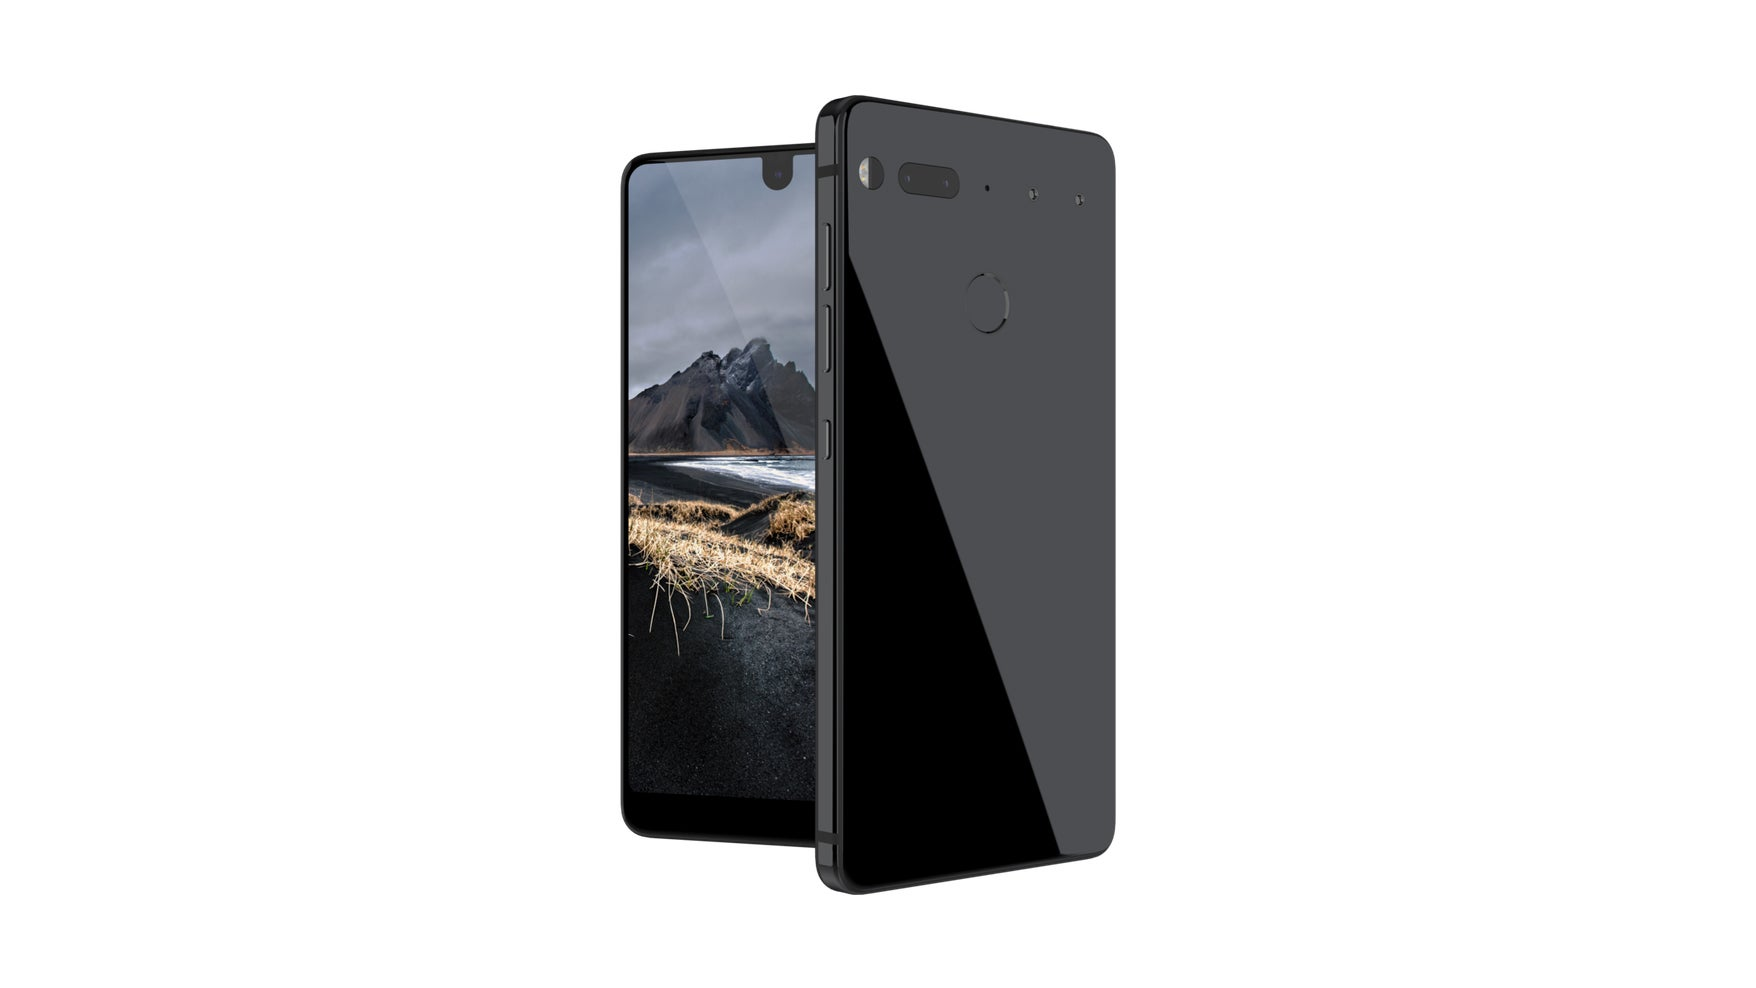 Android's creator is back with his own smartphone, the Essential Phone